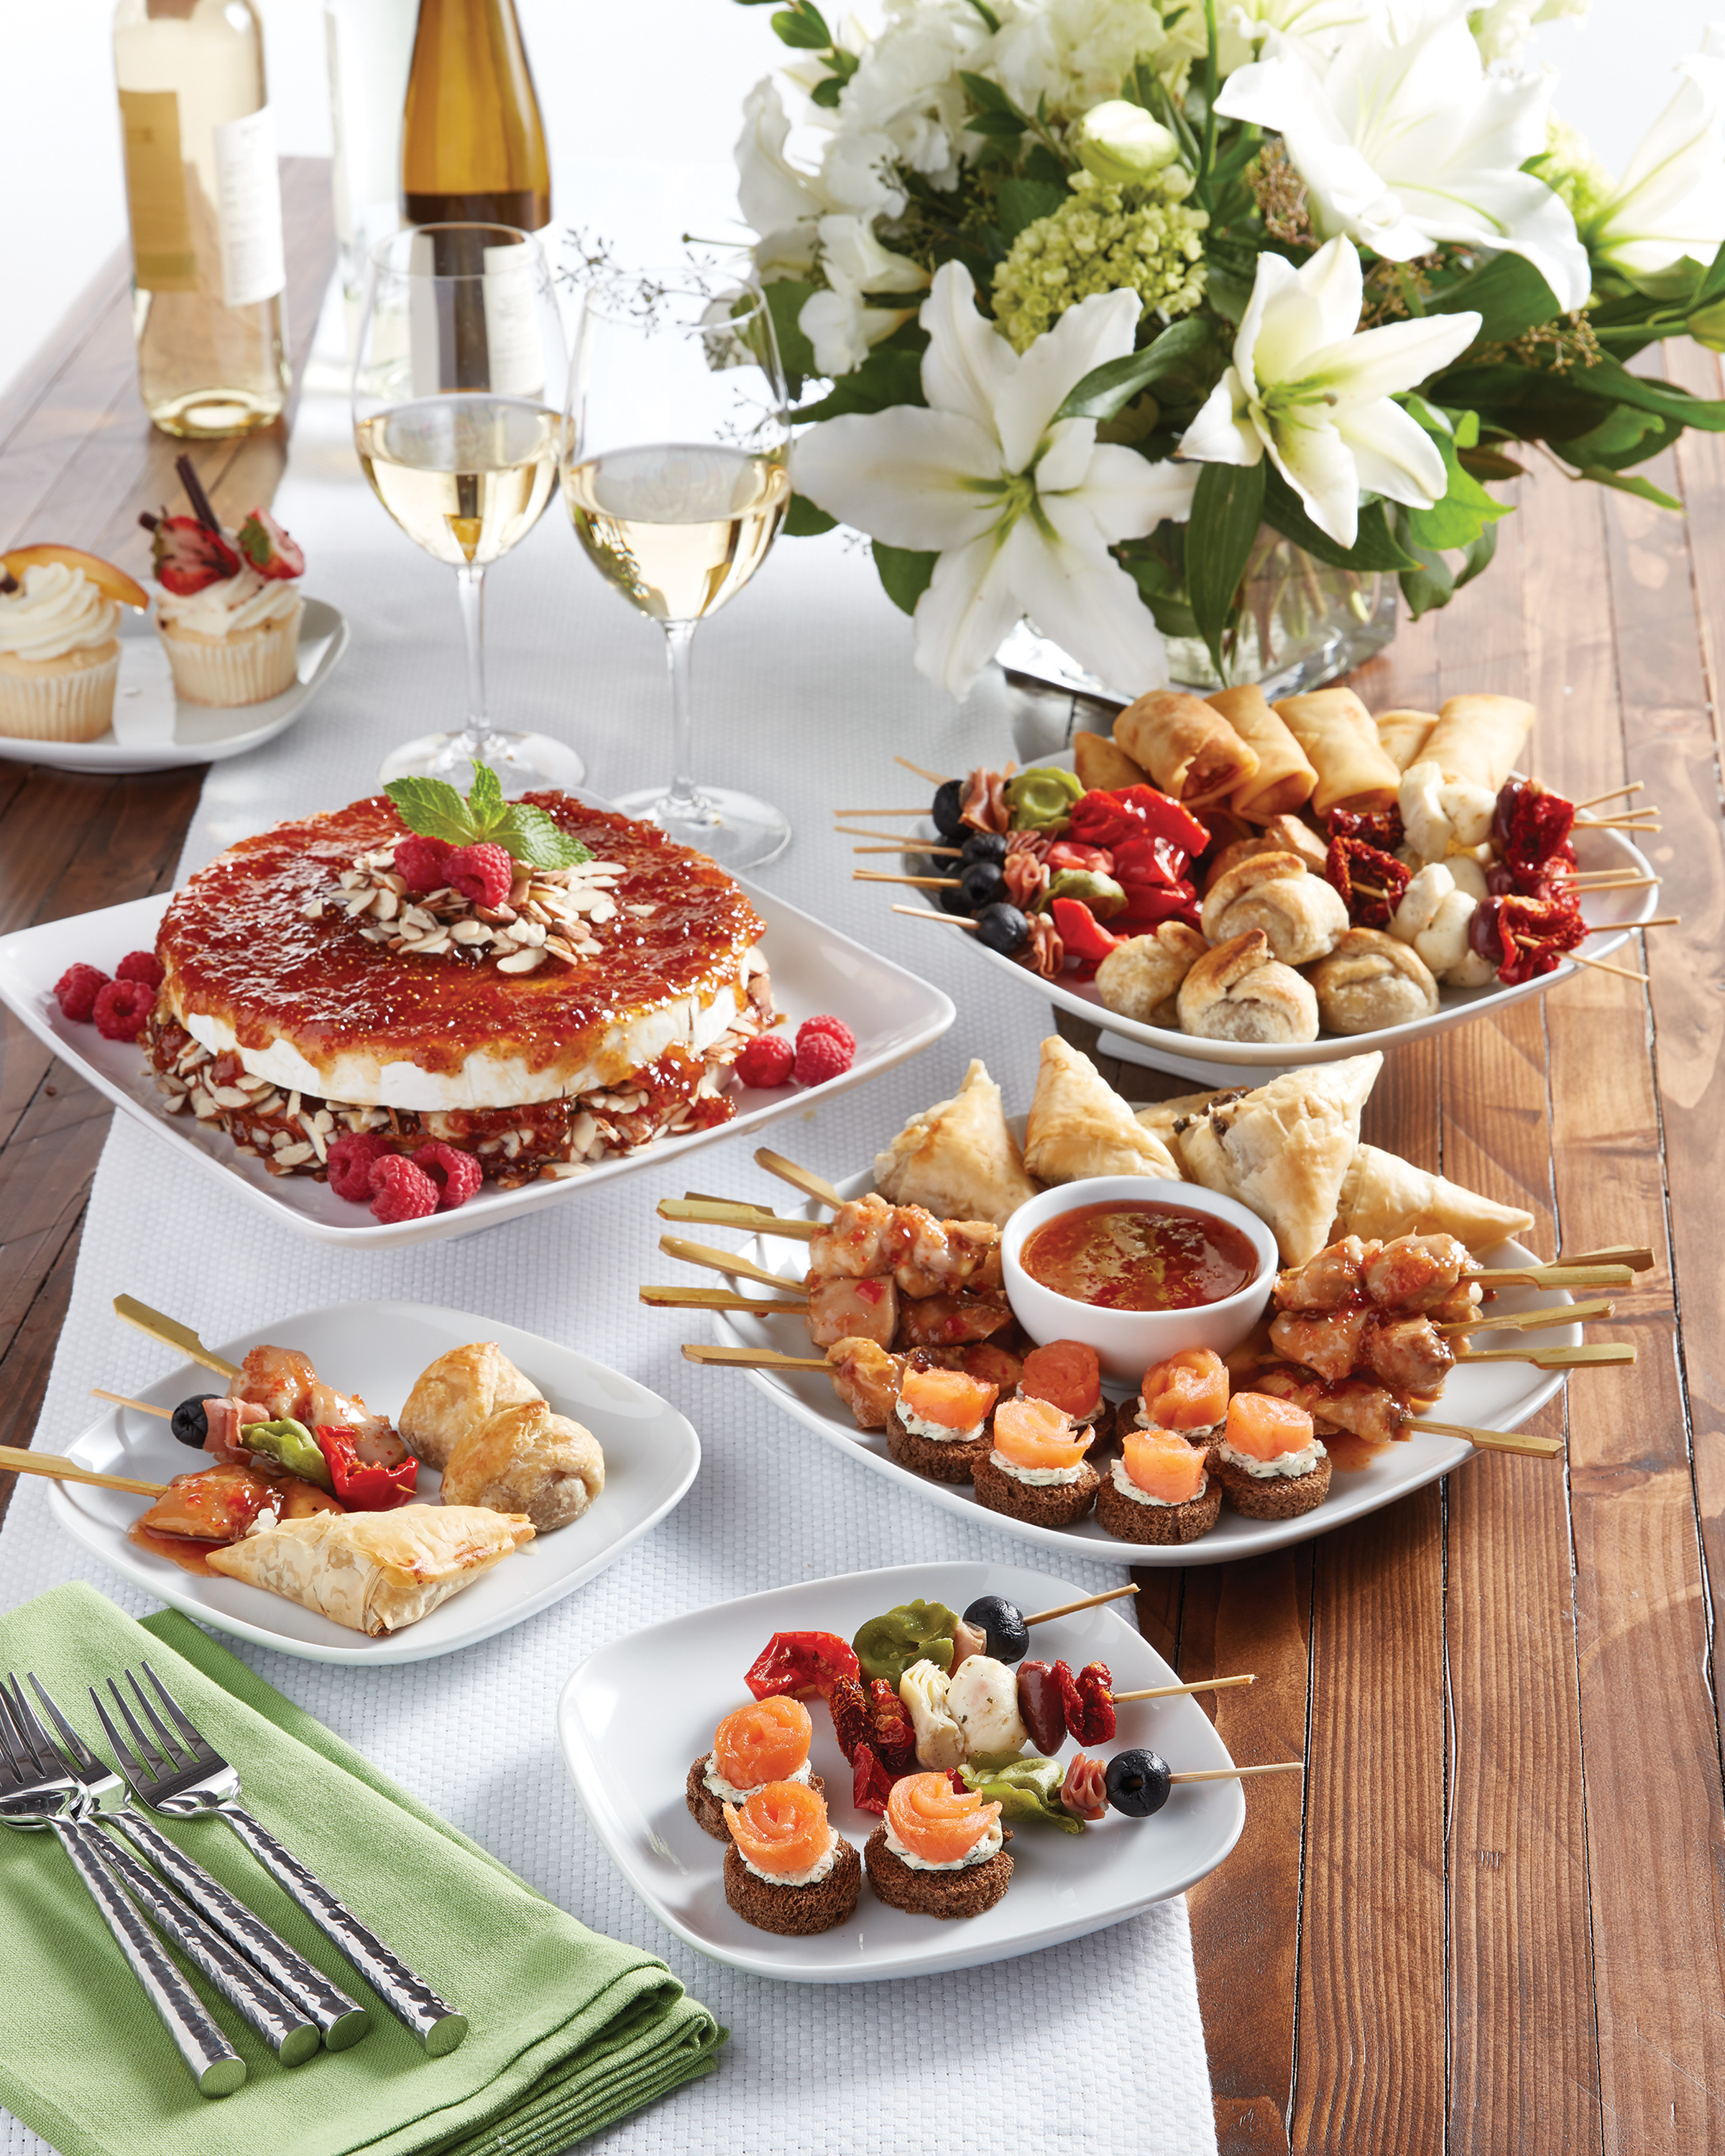 Entertaining with AJ's Fine Foods. A table with delicious lookng appetizers in a professionally catered setting.